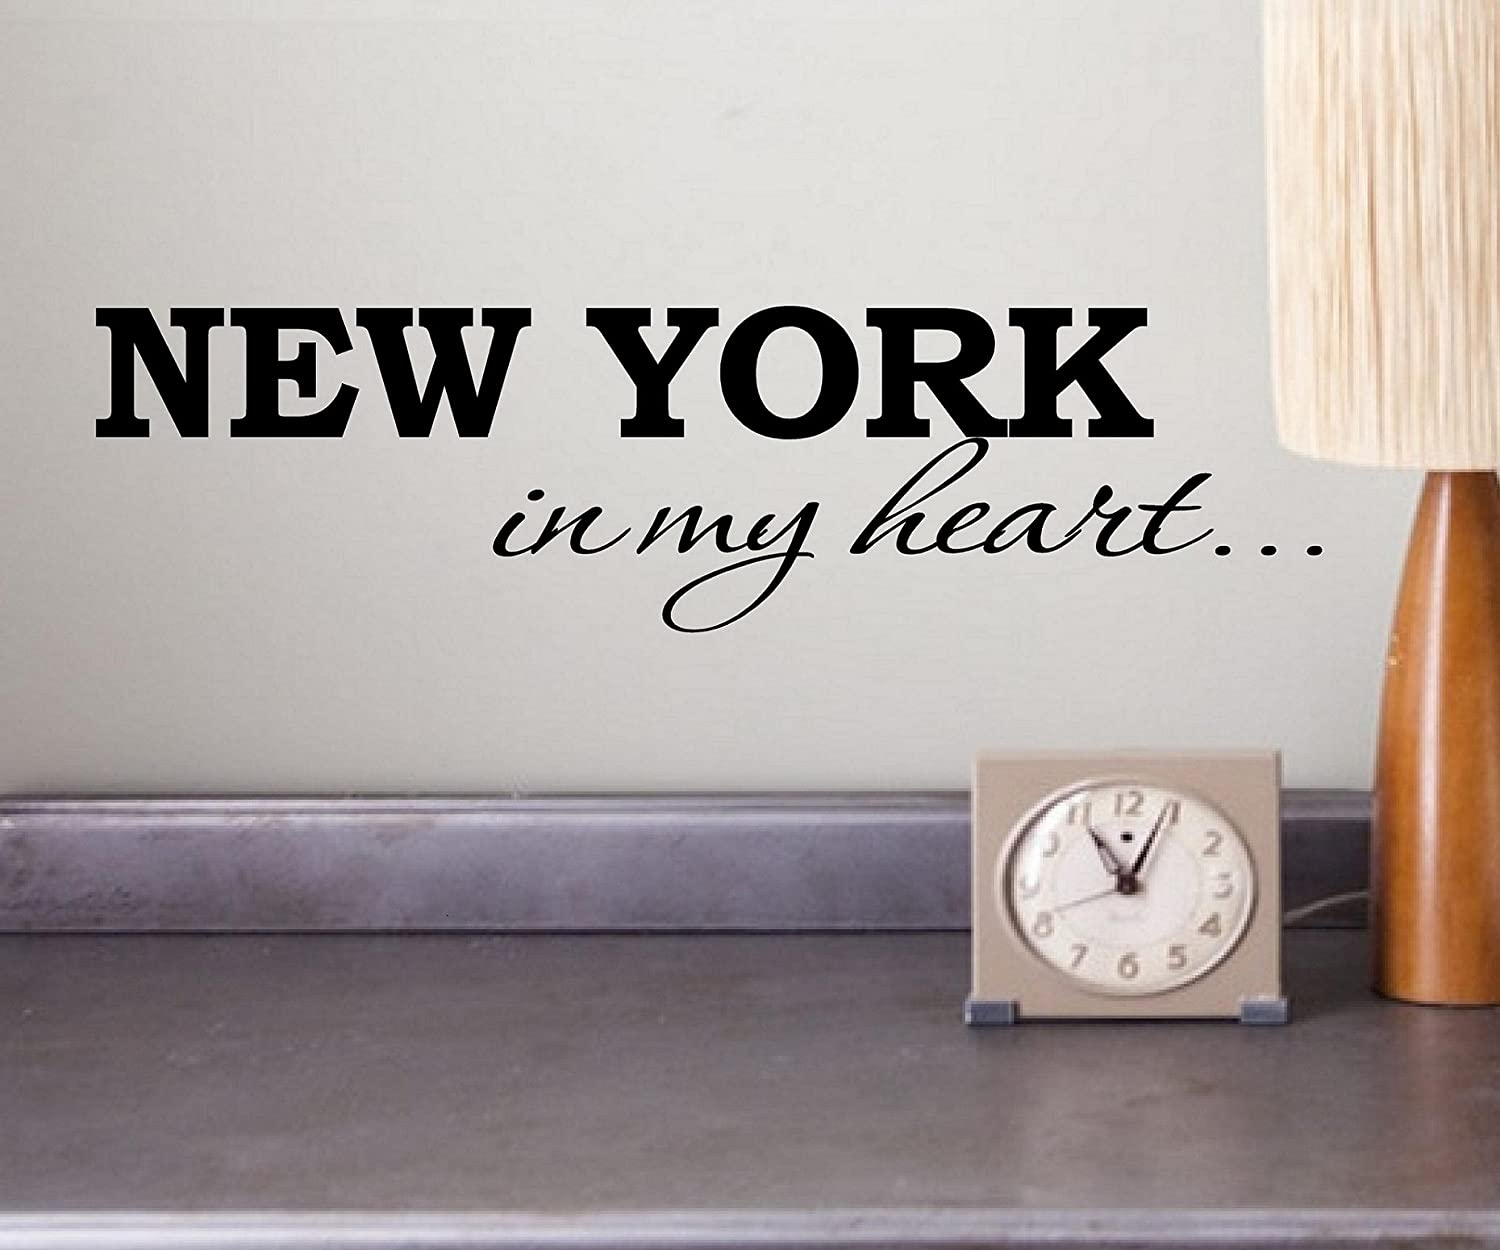 New York In My Heart Vinyl Wall Art Inspirational Quotes And Saying Home  Decor Decal Sticker   New York Bedroom Decor   Amazon.com